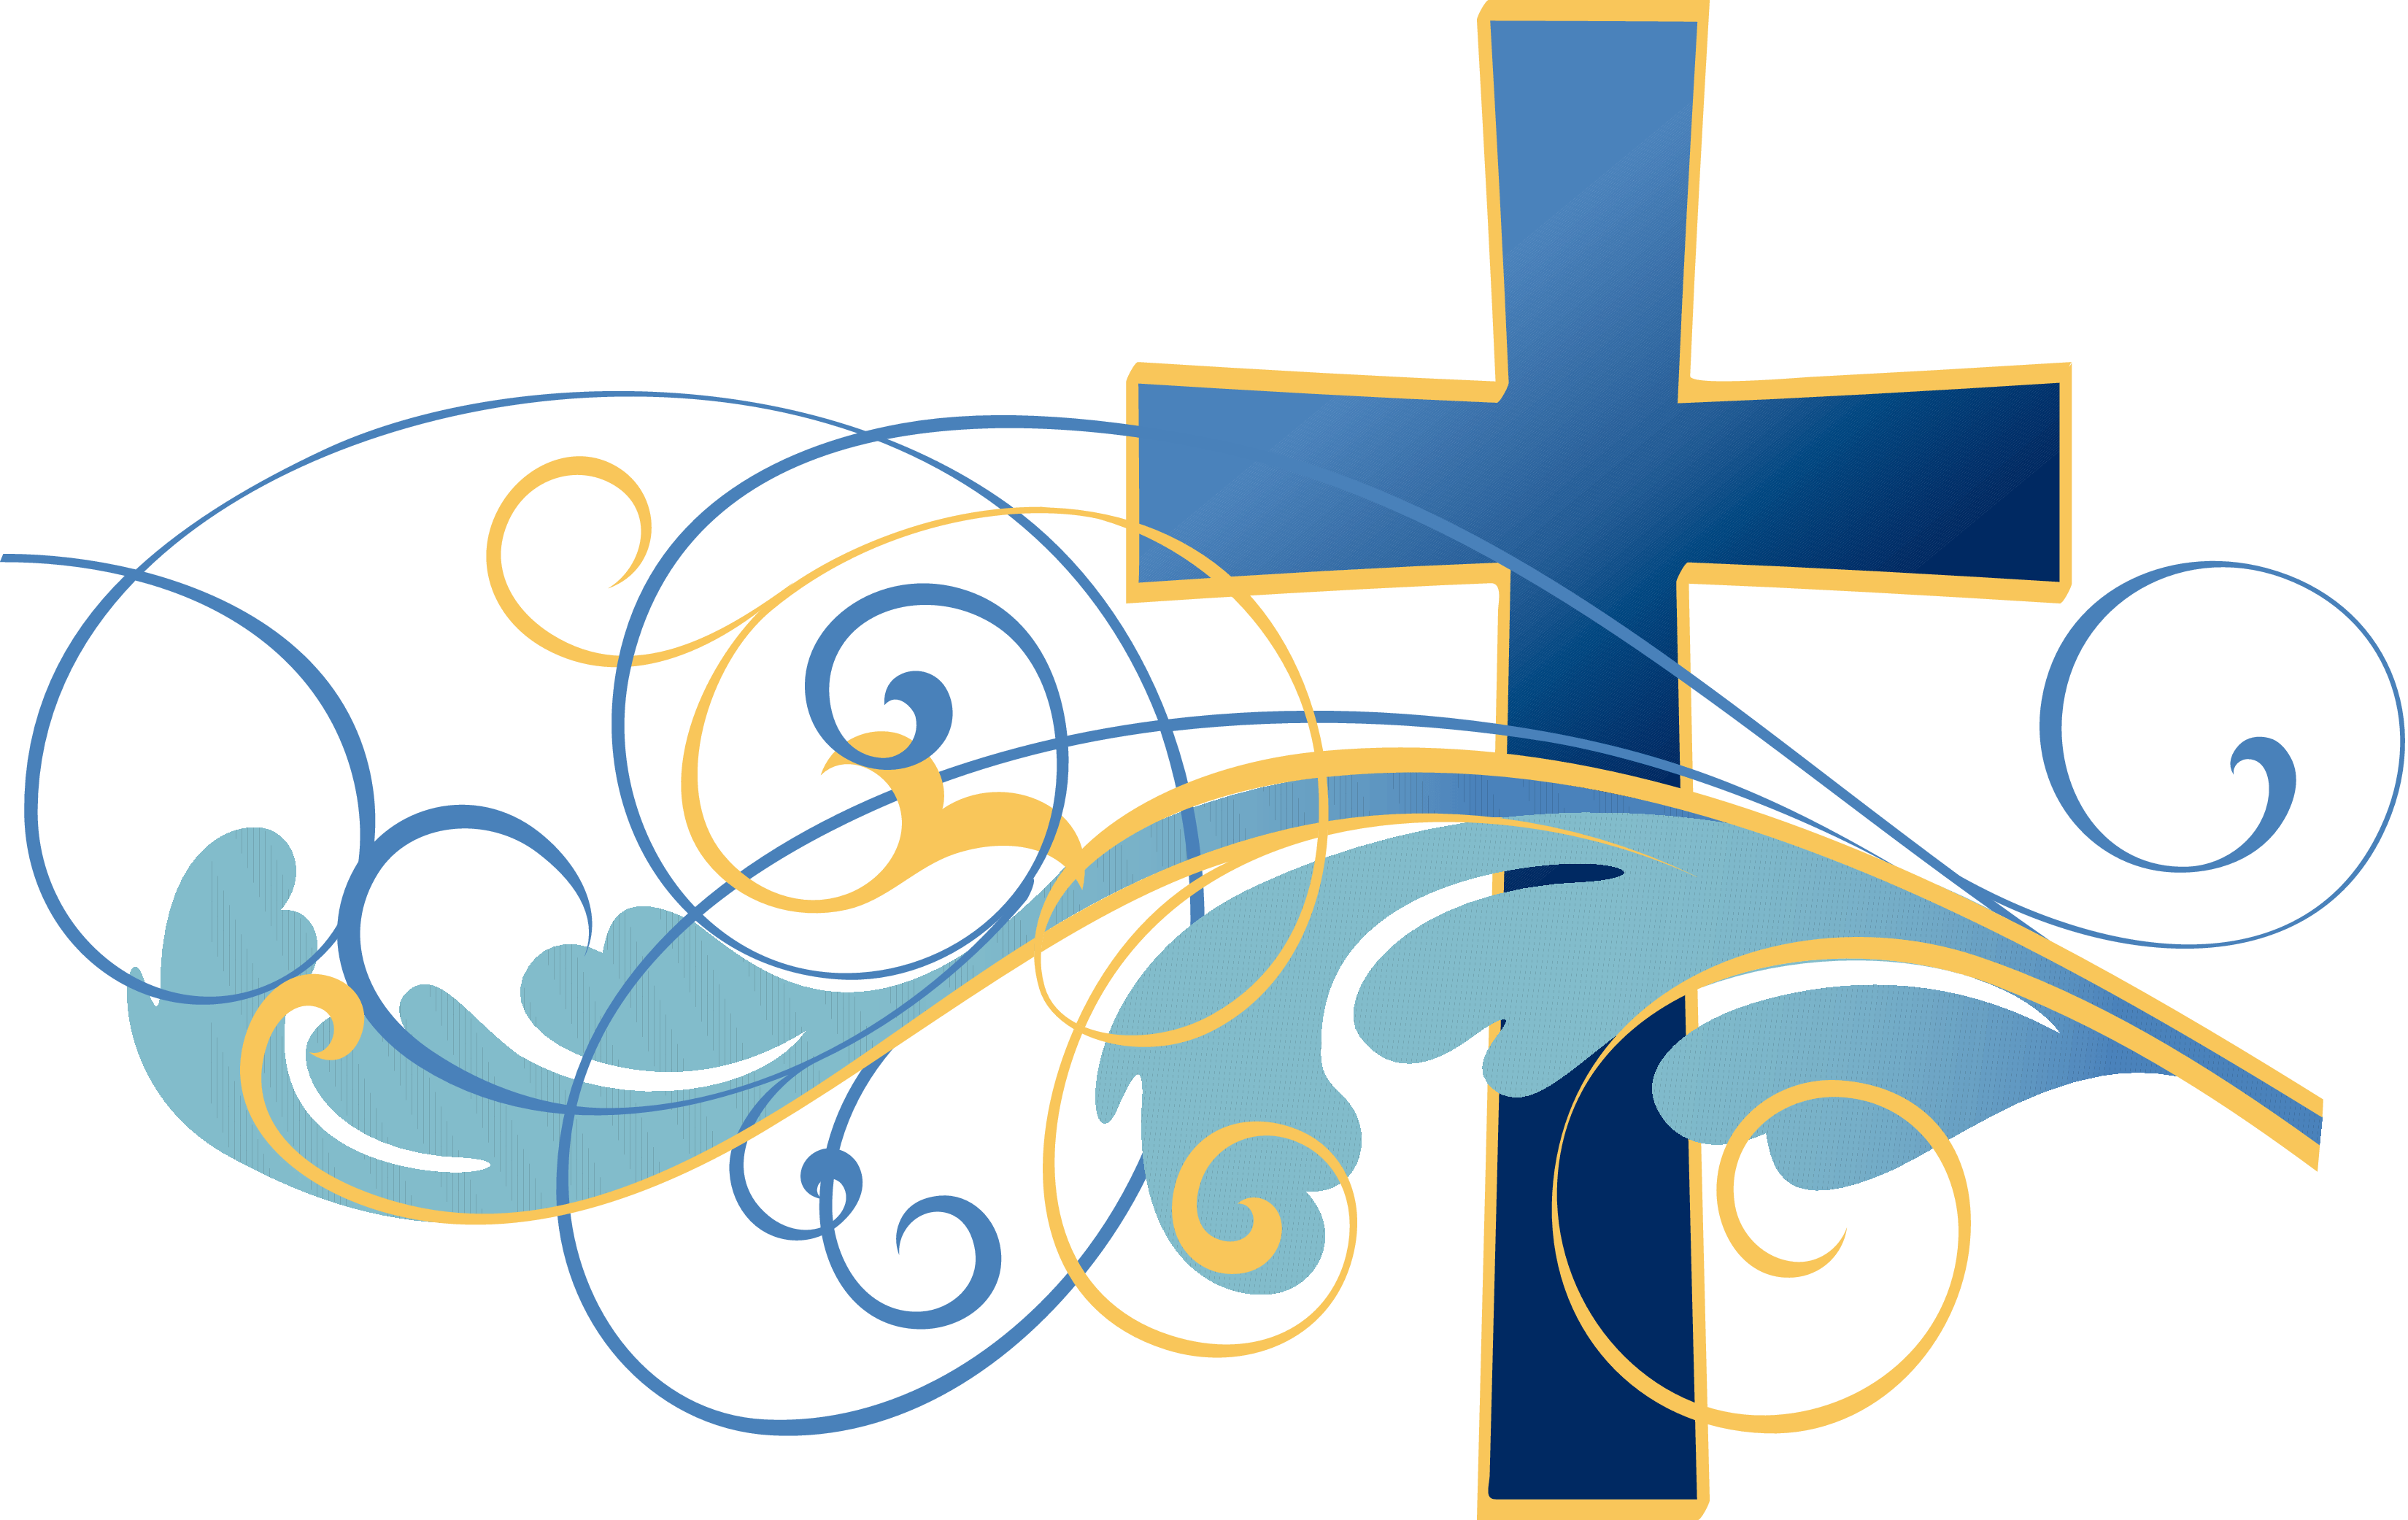 Lily and cross clipart graphic free download Christian Ministries Cliparts Free collection | Download and share ... graphic free download